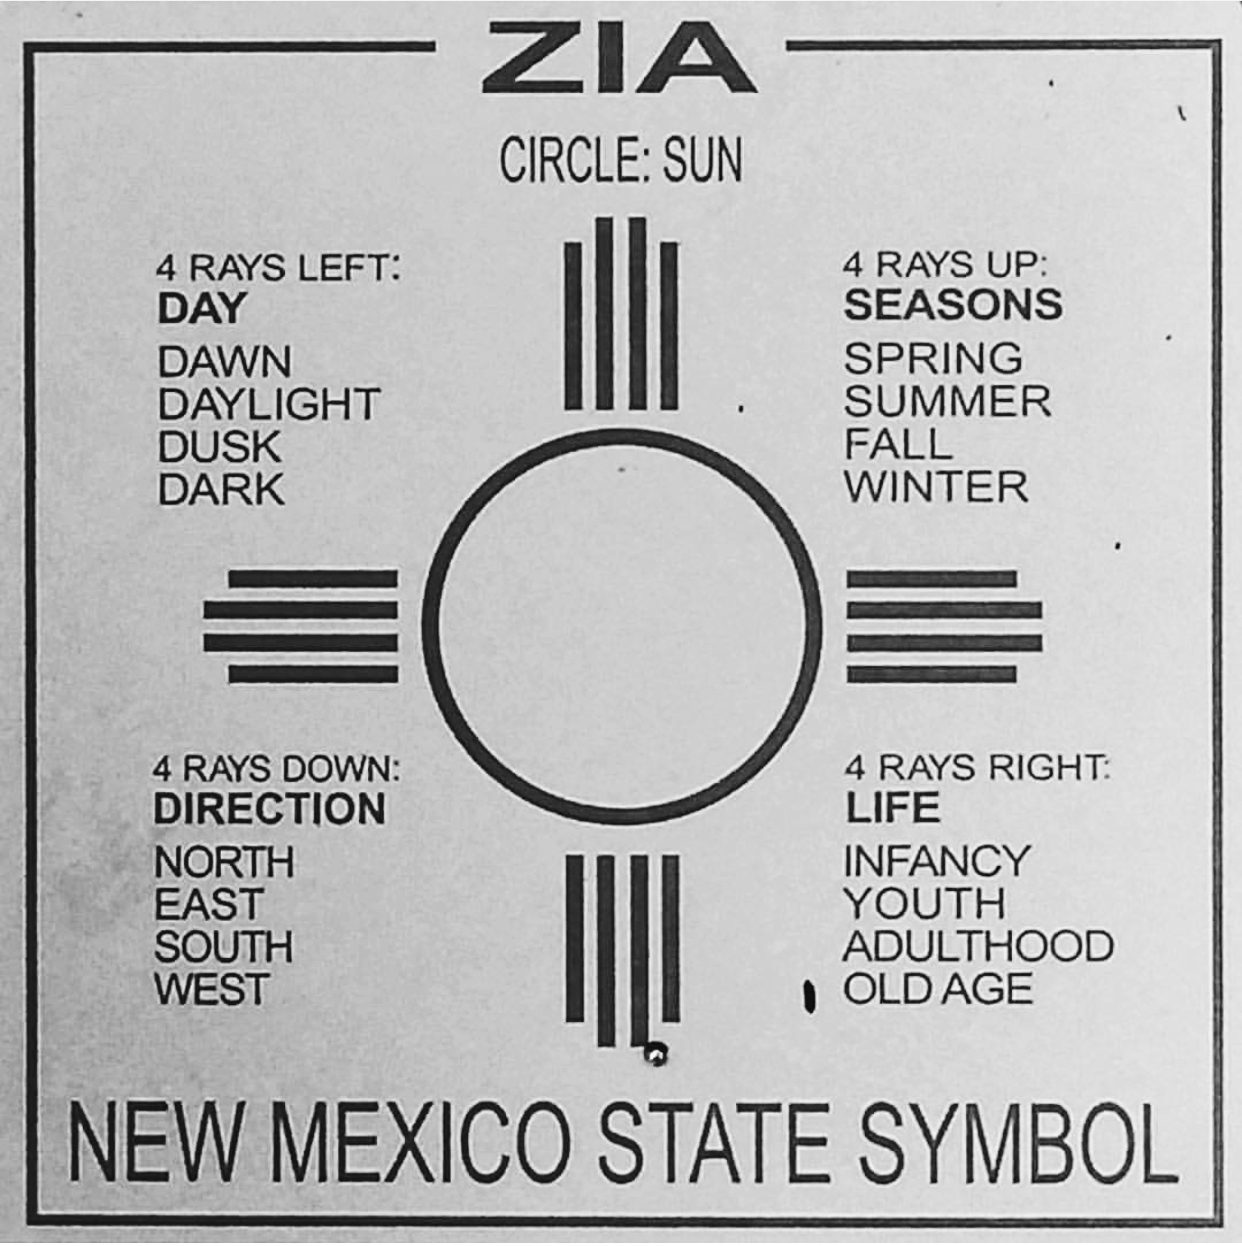 New Mexico's Zia - The Inspiration for the collection